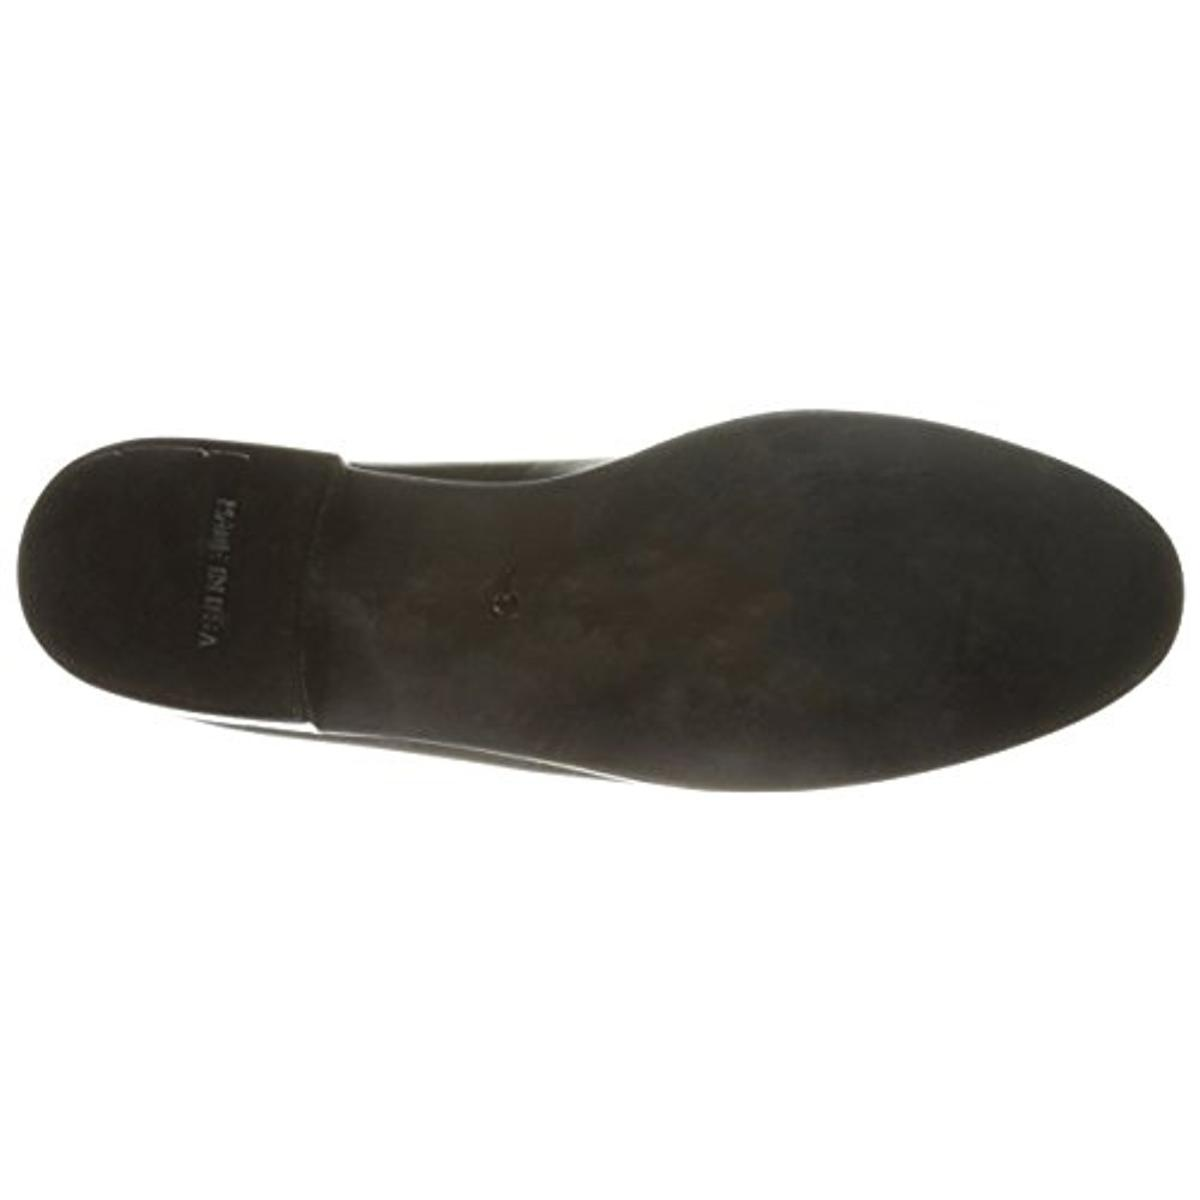 N.Y.L.A. Womens Leather Slip On Loafers